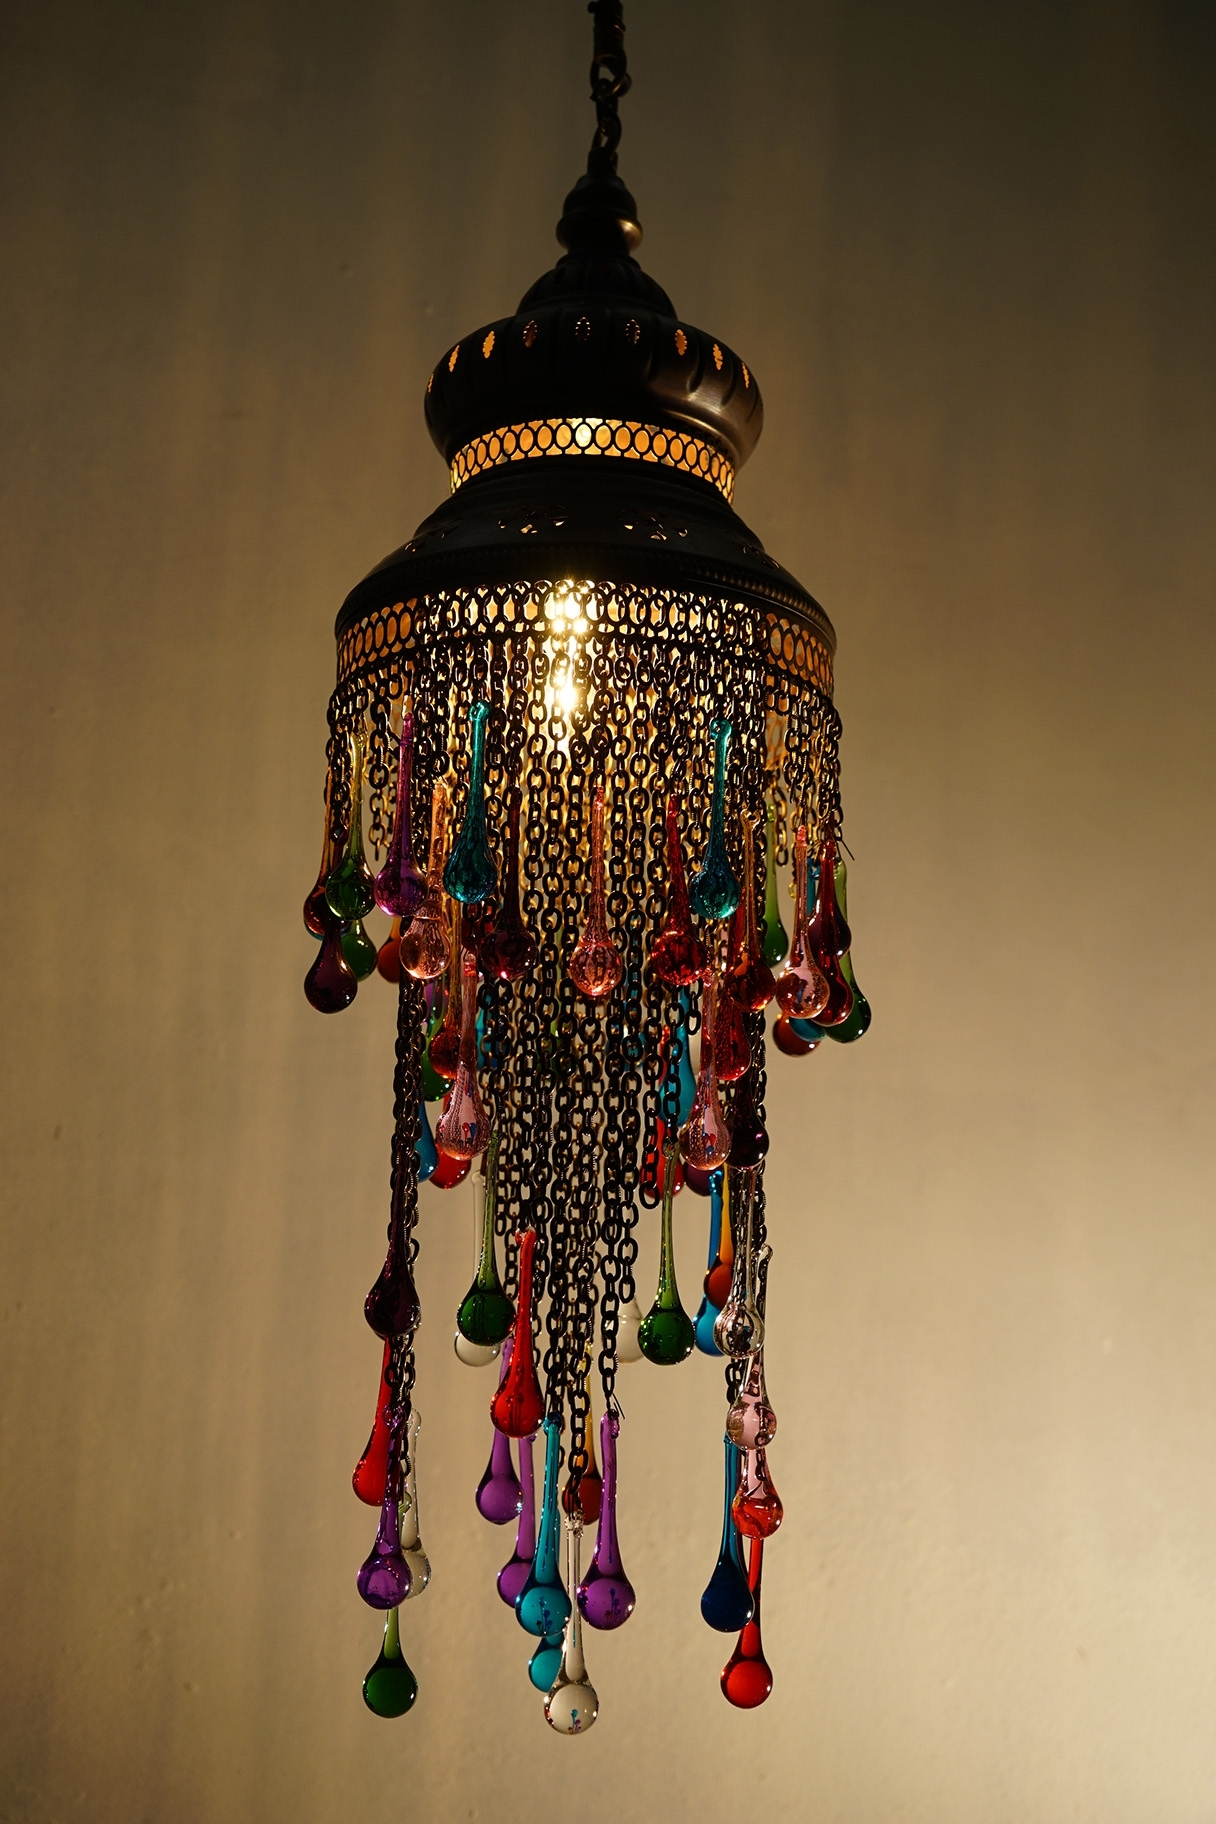 Coloured Glass Chandelier For Most Up To Date Coloured Glass Tear Drop Chandelier (View 15 of 15)